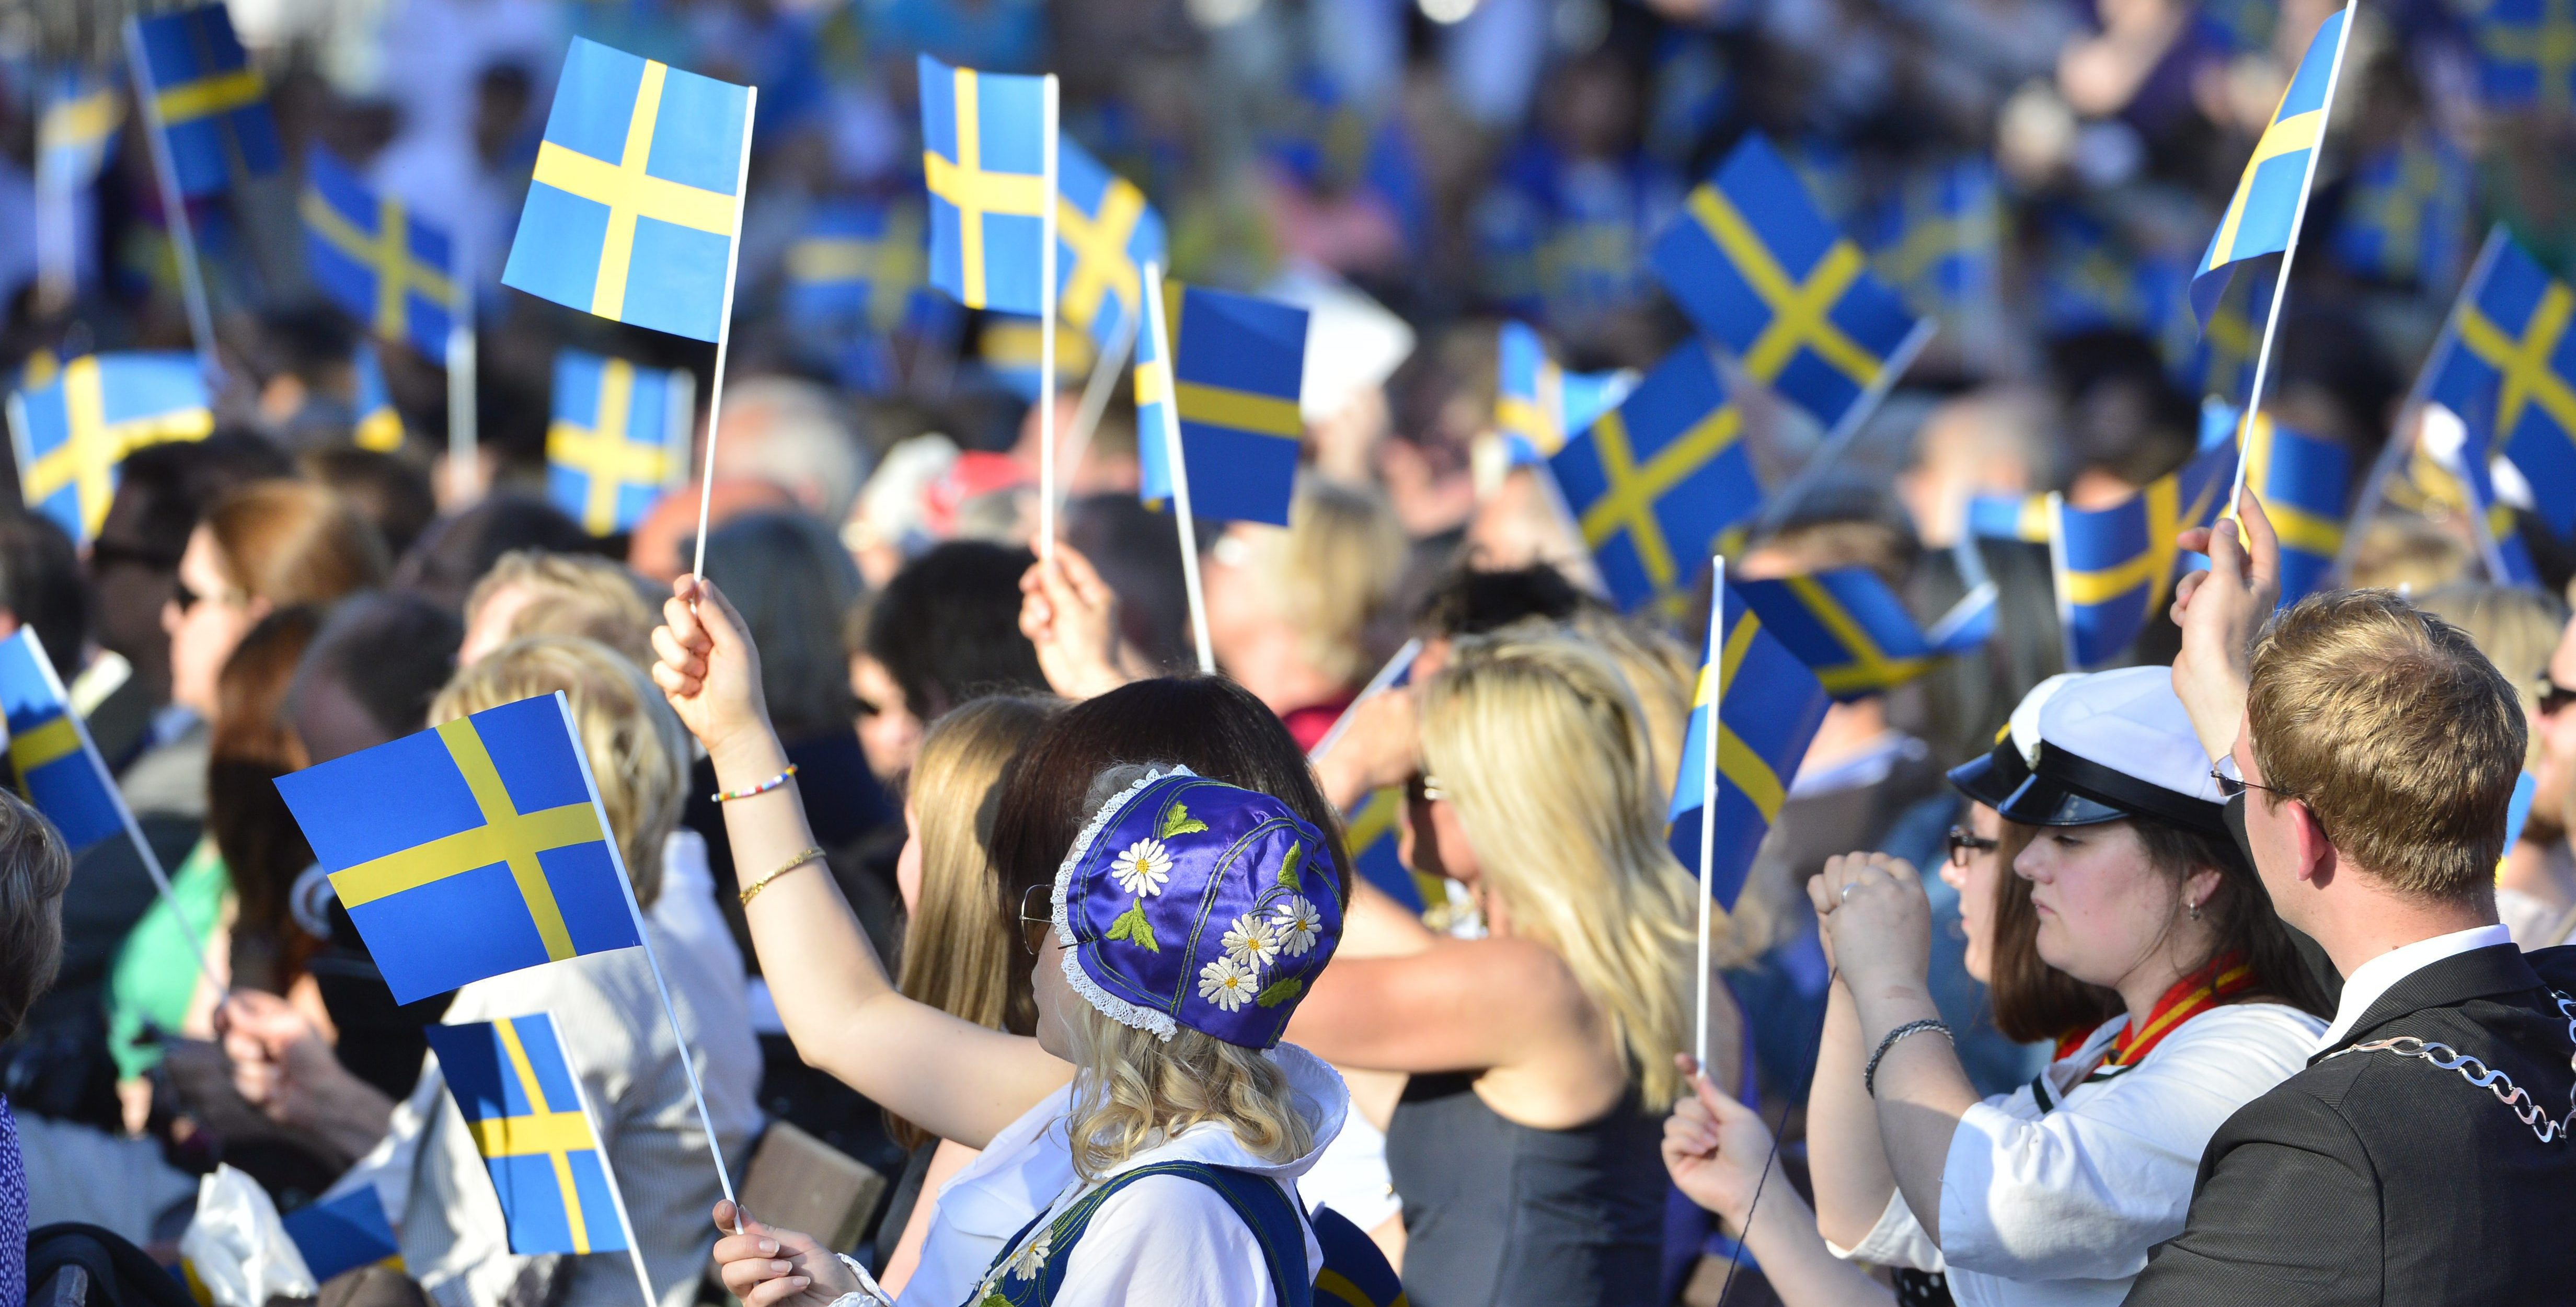 People wave Swedish flags during the traditional National Day celebrations with the royal family at Skansen in Stockholm, Sweden, on June 6, 2013. AFP PHOTO / SCANPIX SWEDEN / HENRIK MONTGOMERY (Photo credit should read HENRIK MONTGOMERY/AFP/Getty Images)